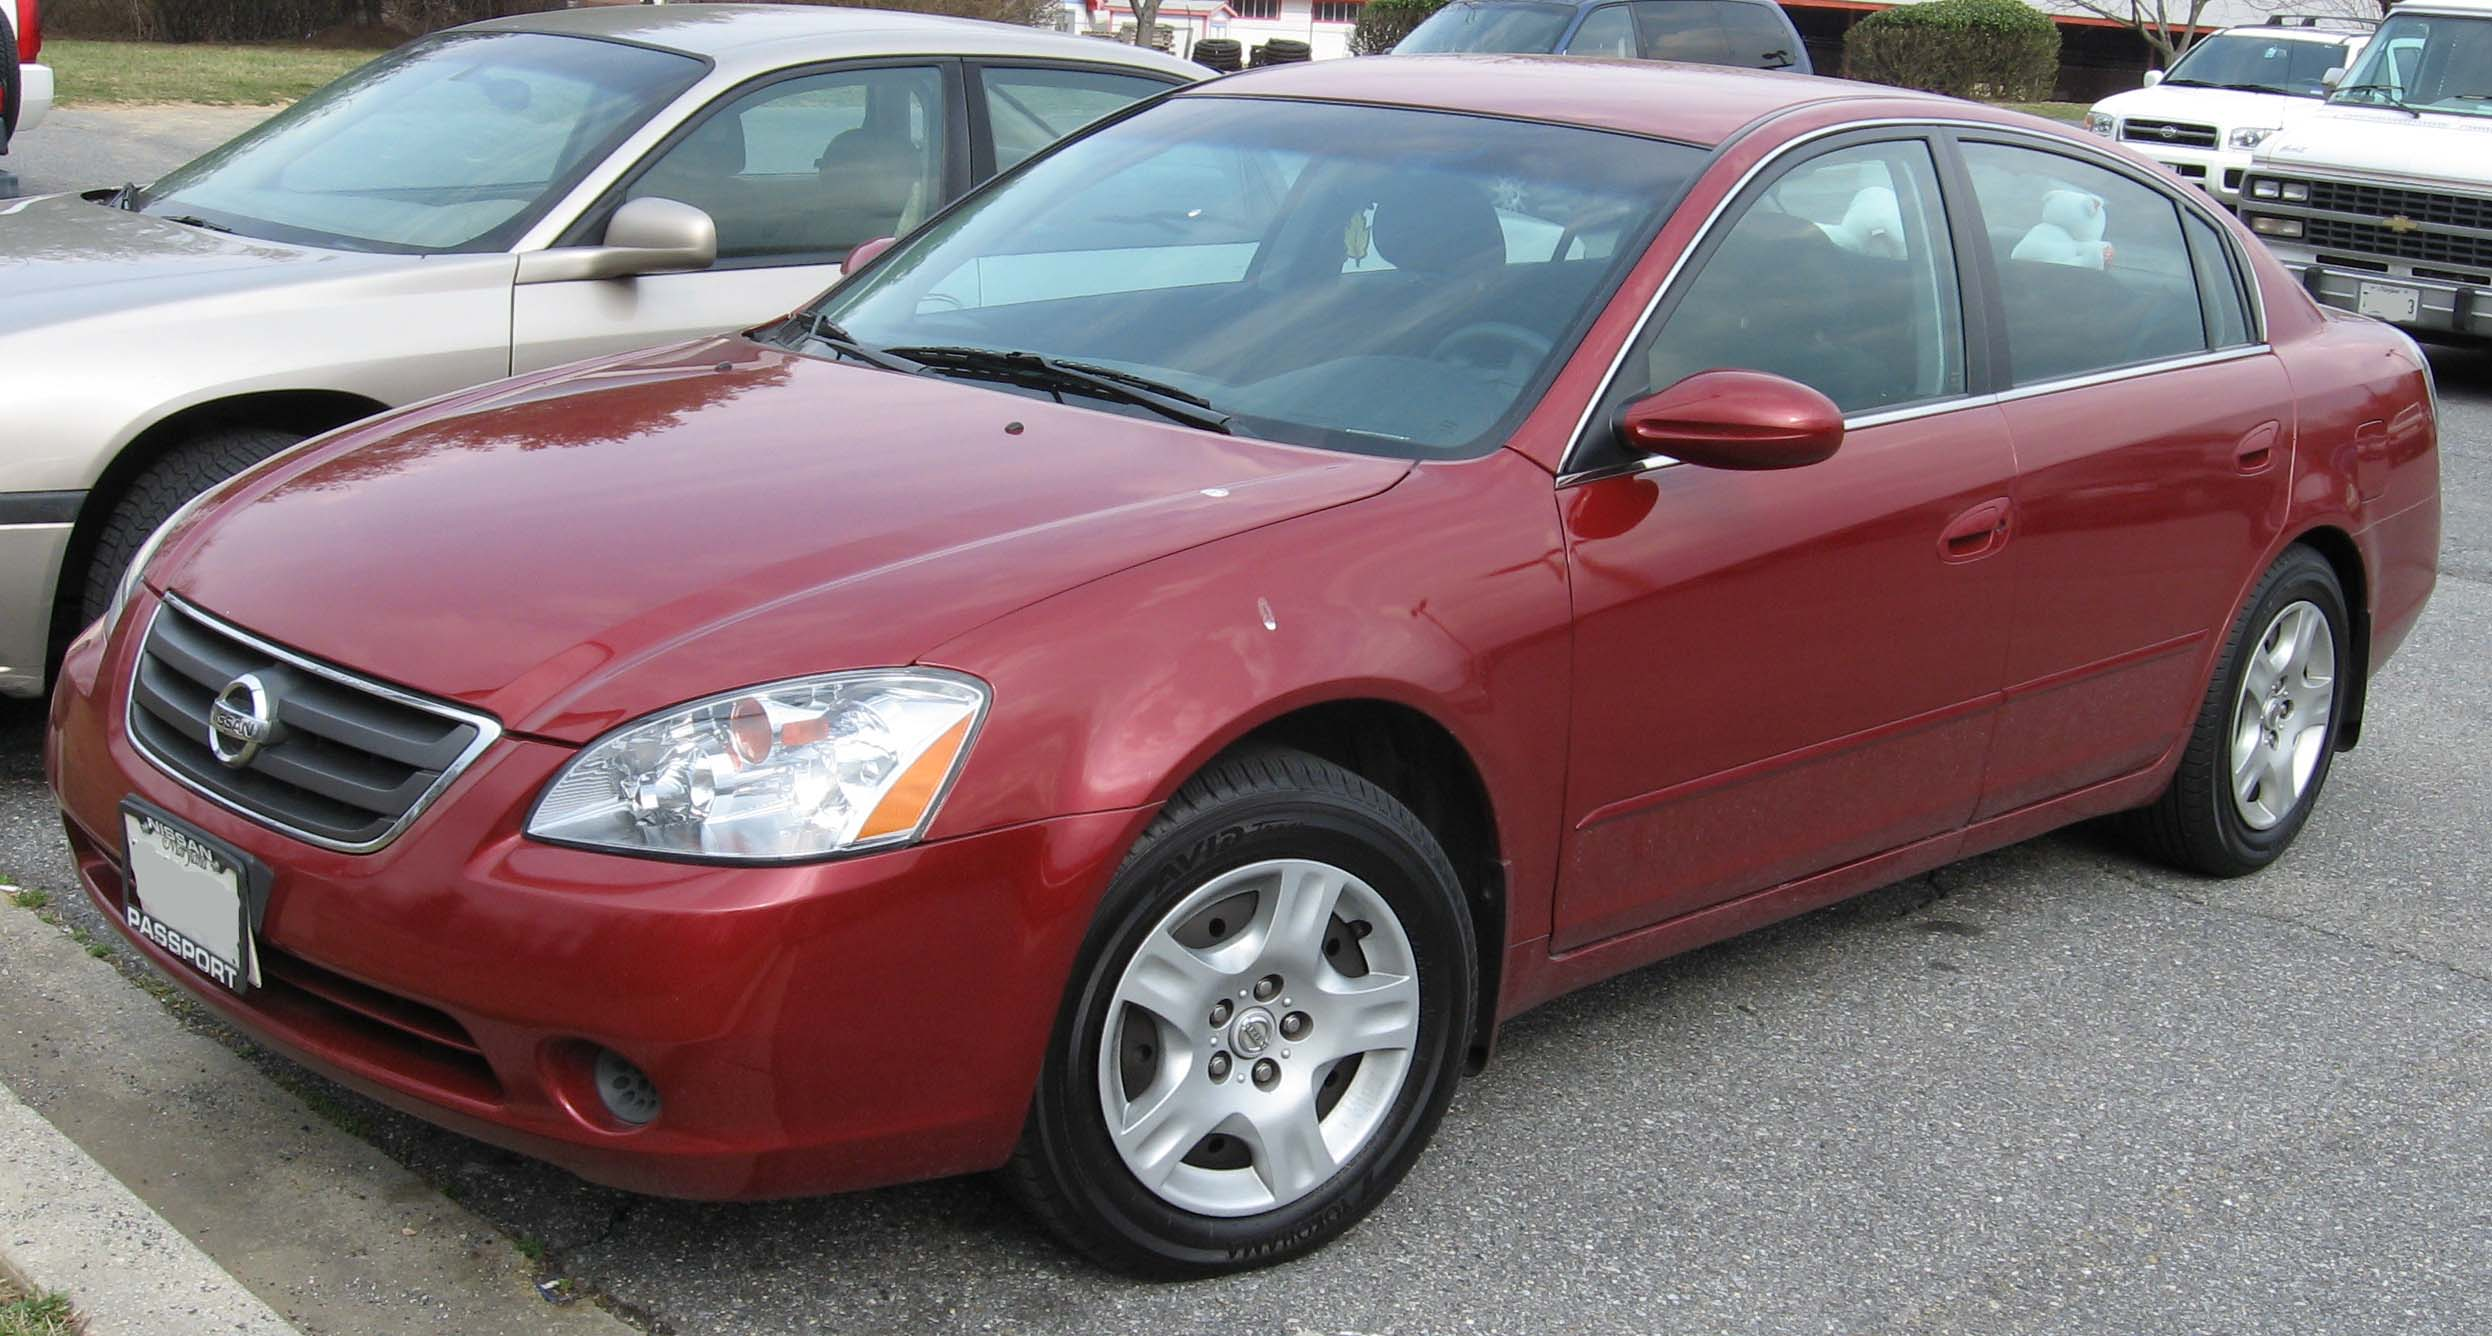 2002 nissan altima information and photos zombiedrive. Black Bedroom Furniture Sets. Home Design Ideas